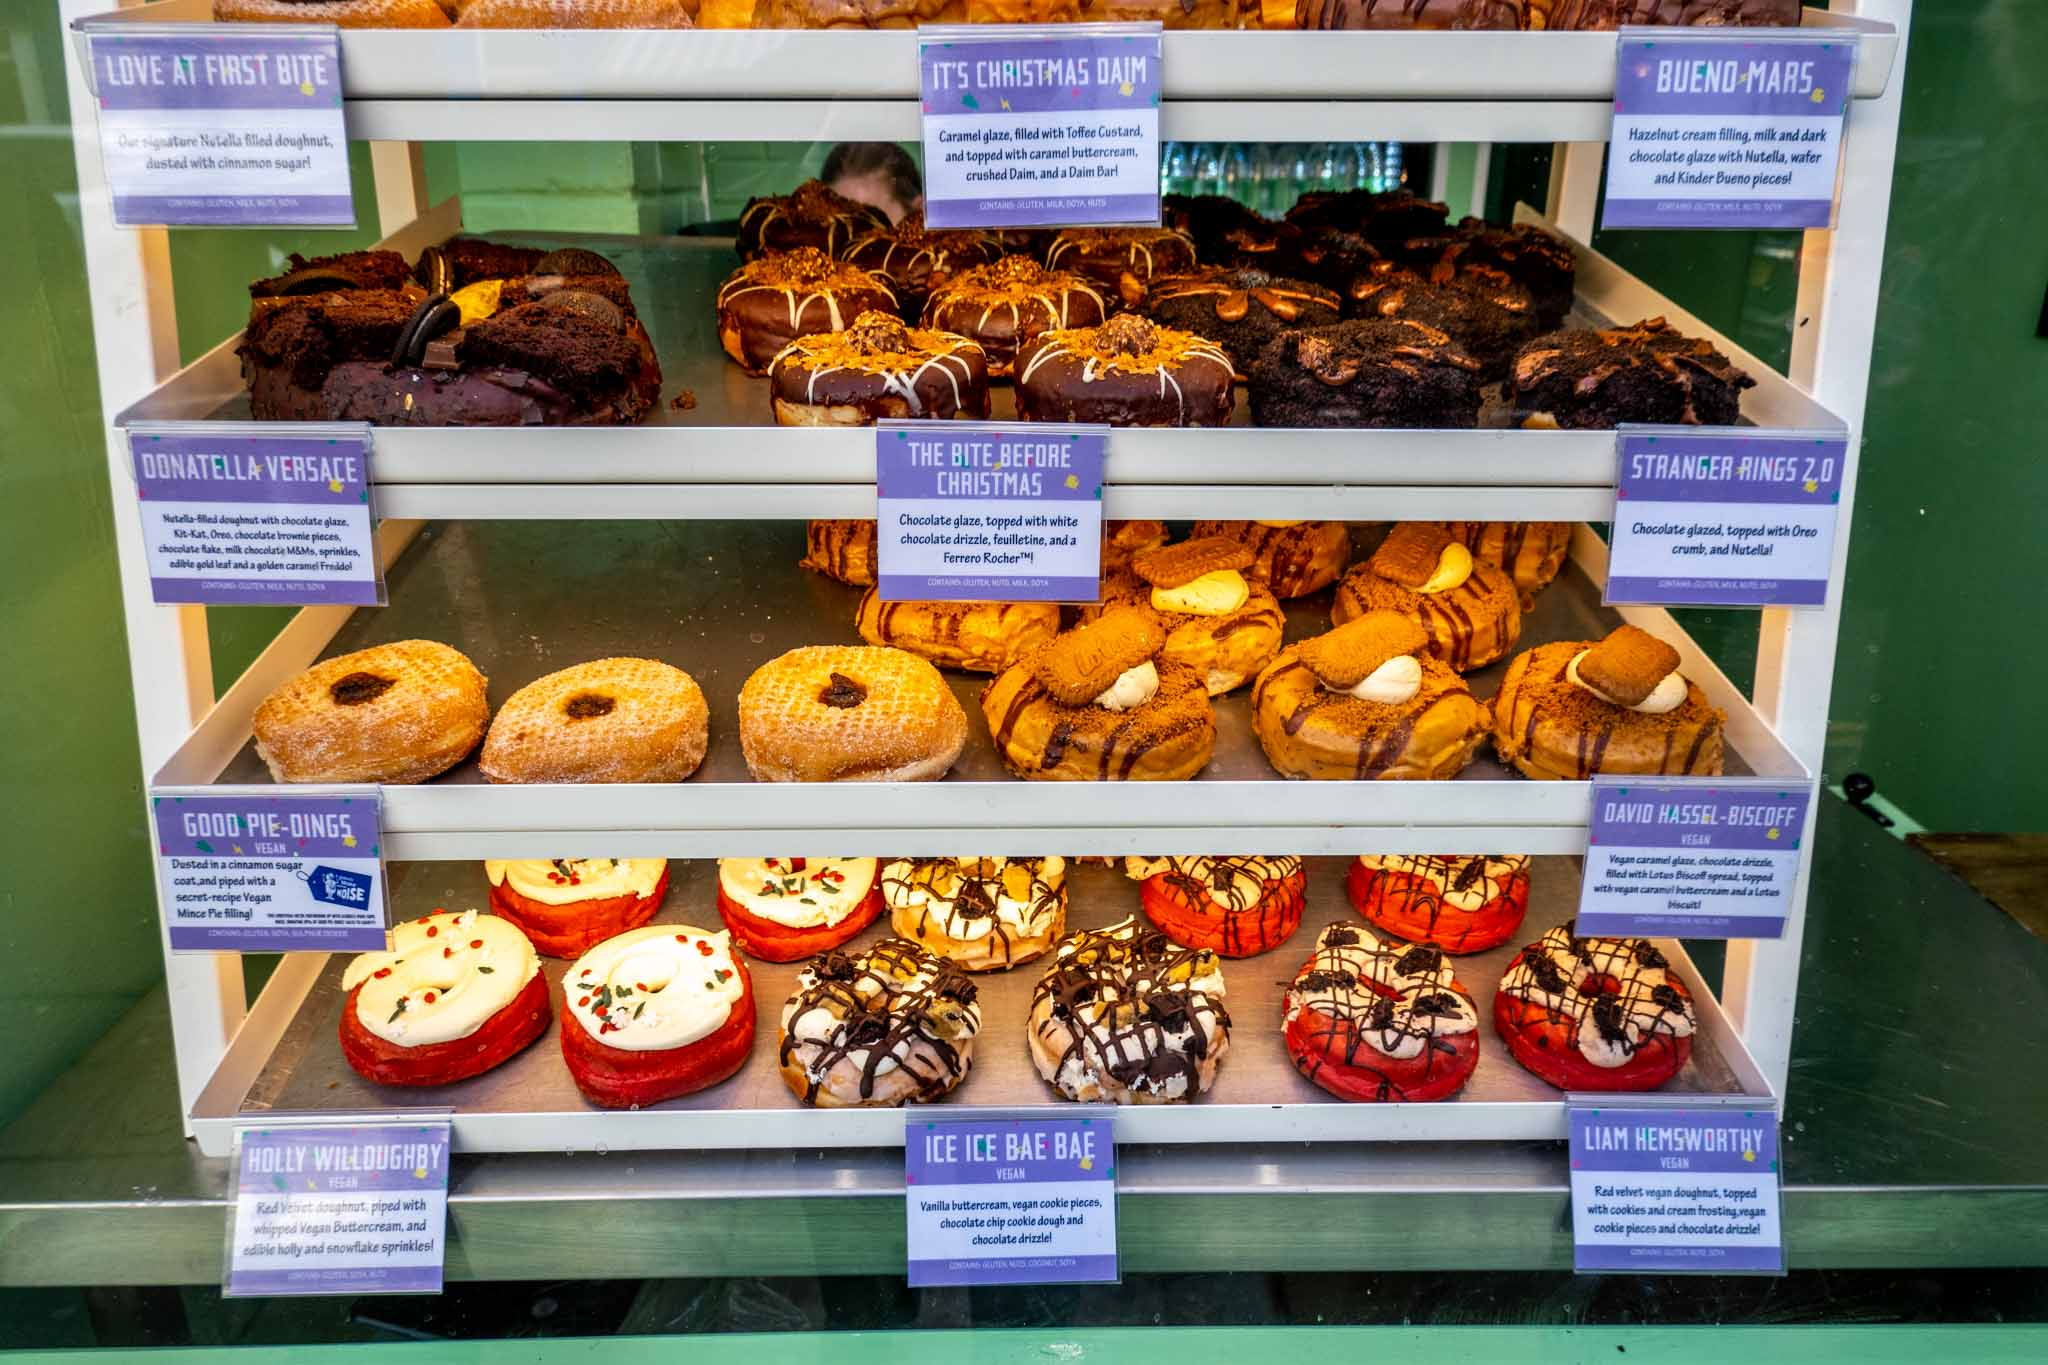 Shelves displaying decadent donuts with unusual names and flavors